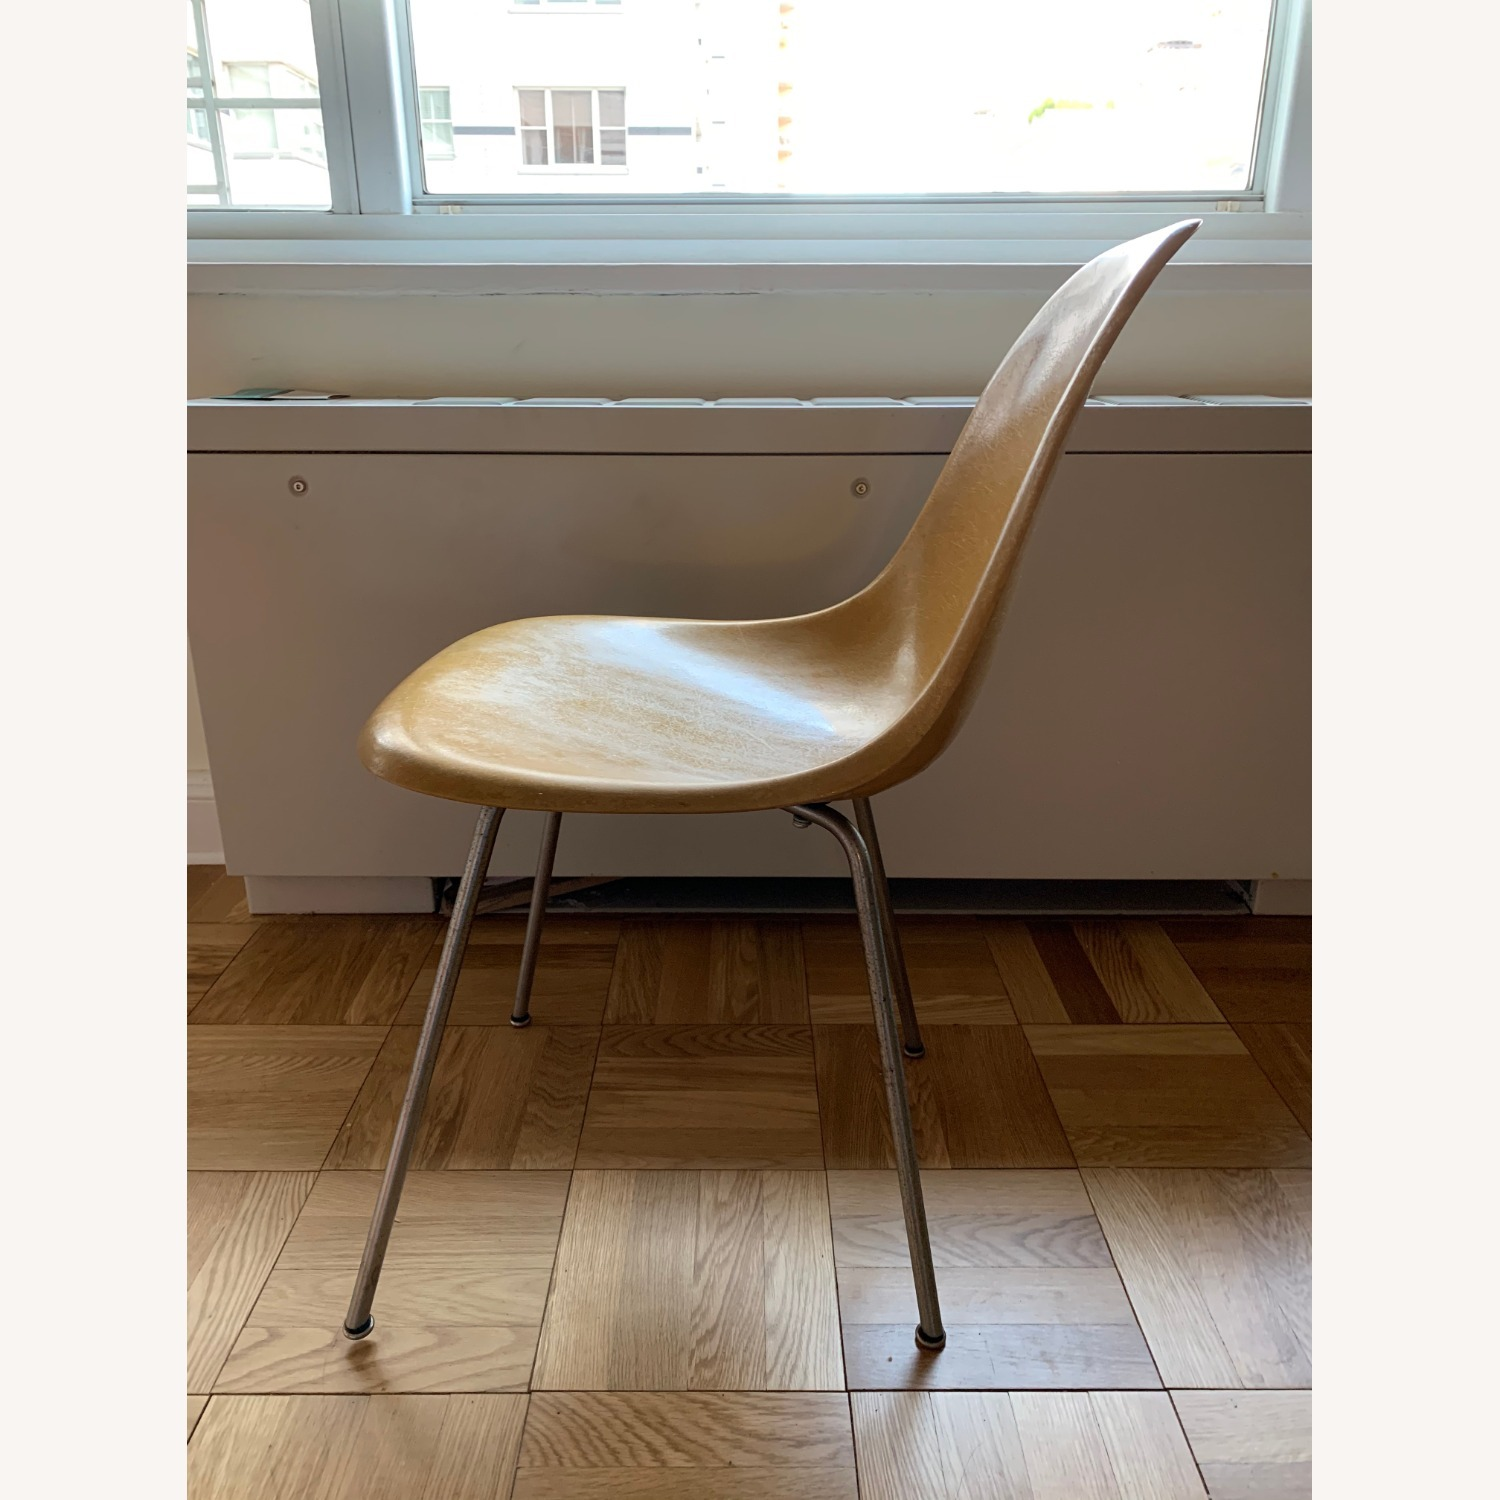 Set of 4 Case Study Chairs (Eames schoolchairs) - image-1